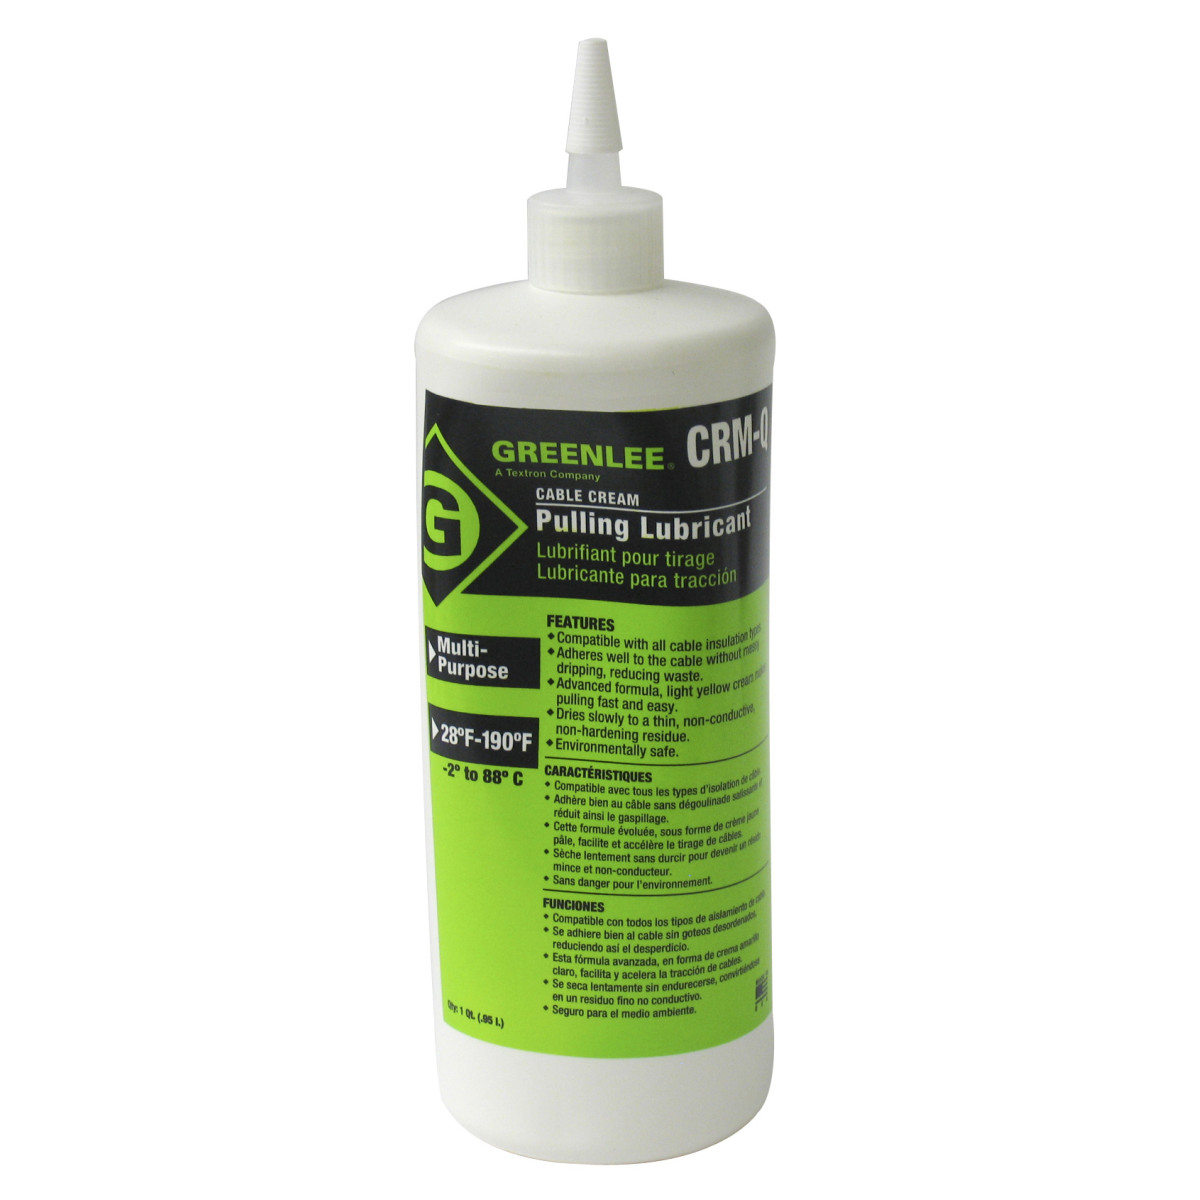 Greenlee CRM-Q Cable-Cream™ Cable Pulling Lubricant, 1-Quart Squeeze Bottle